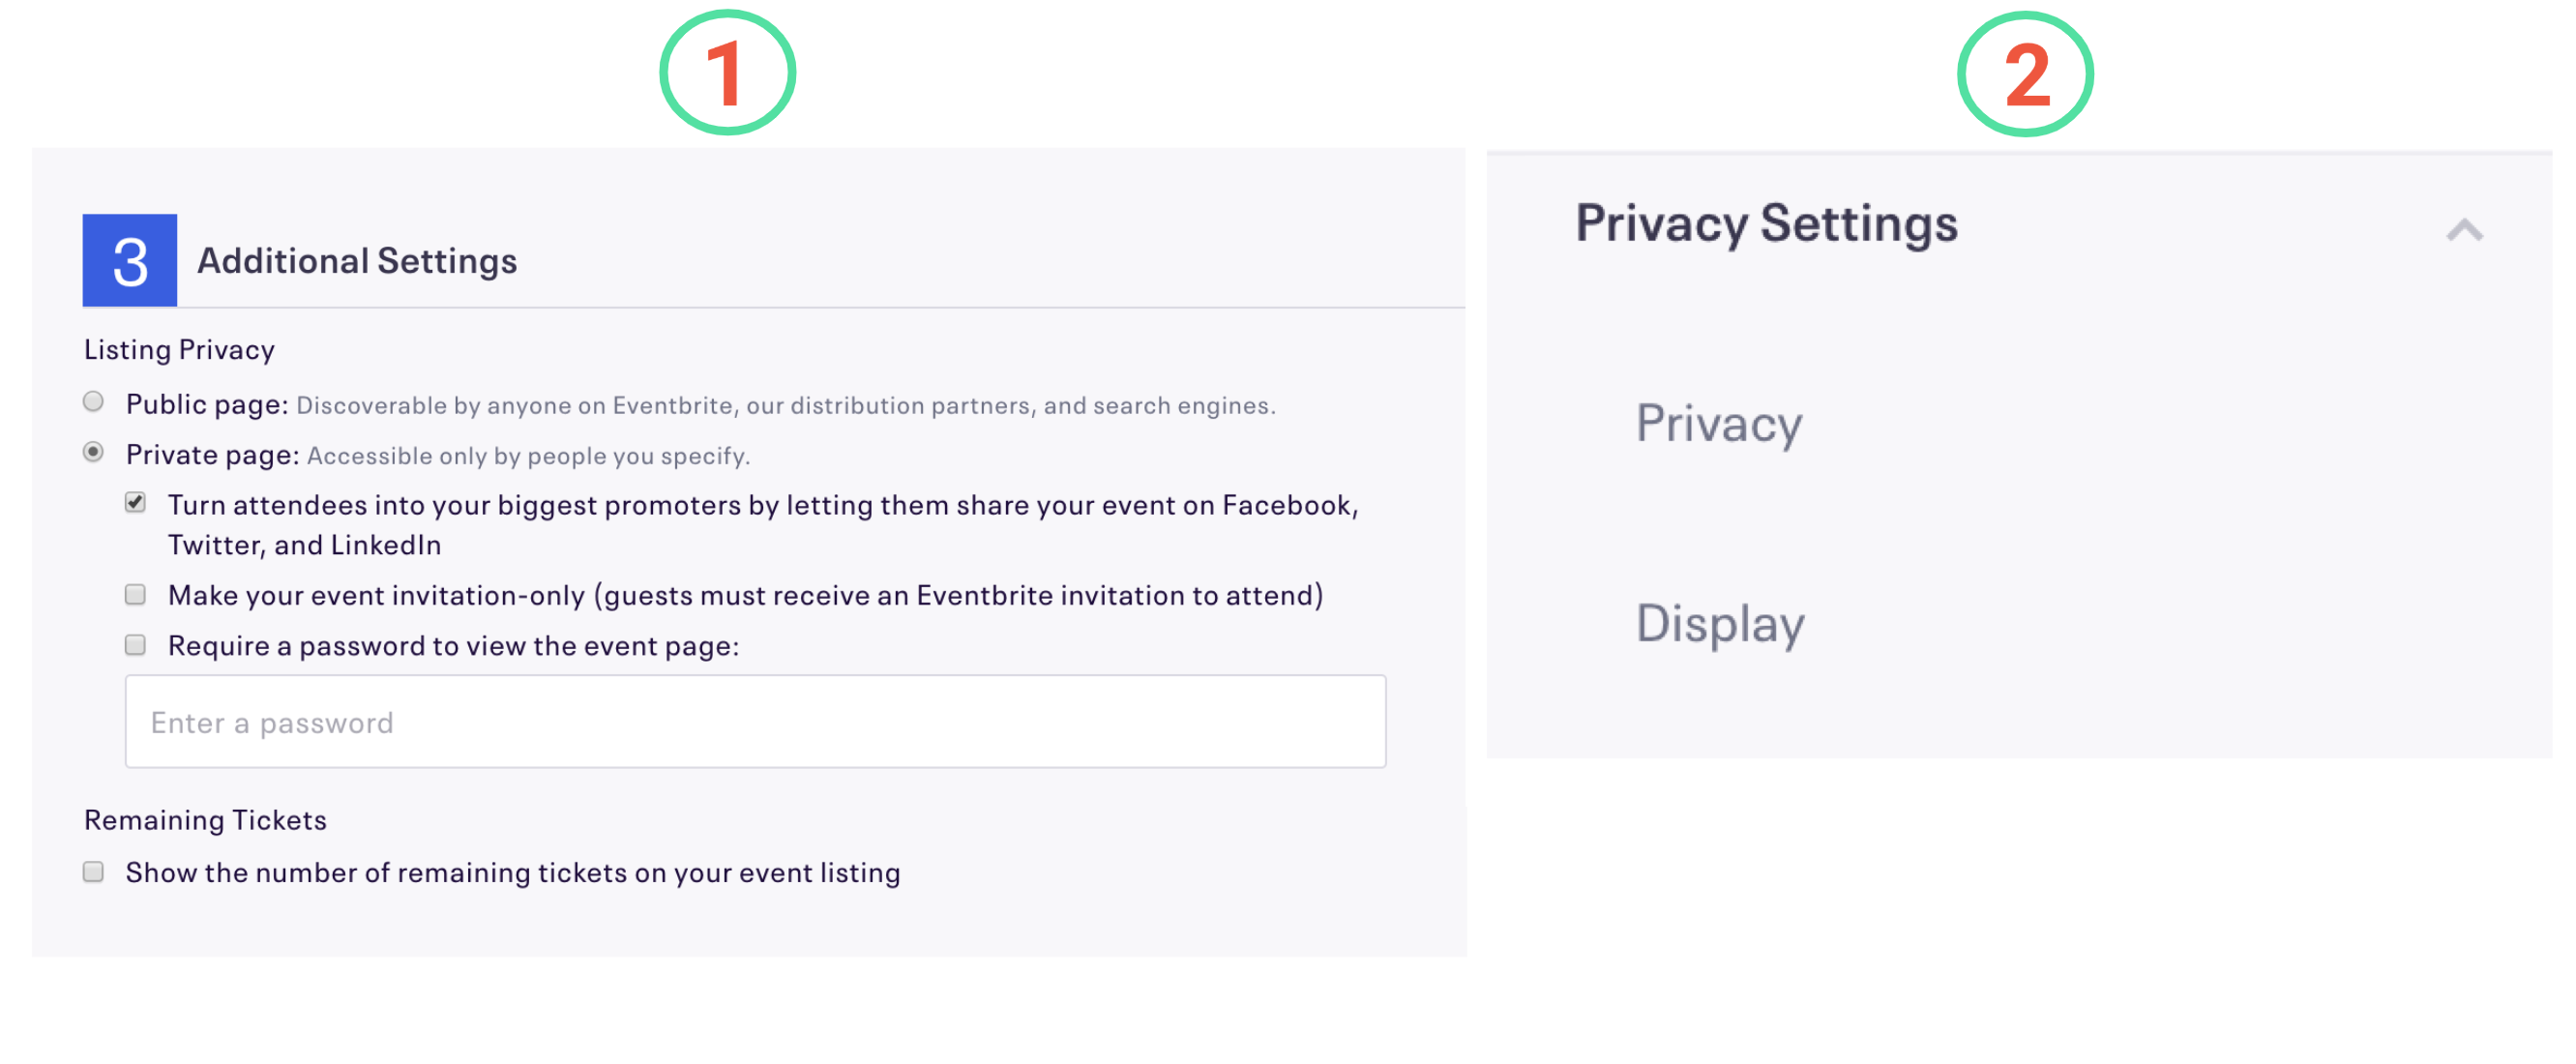 Image highlighting (1) classic versus (2) new event creation experience differences for 3: Additional Settings and how it maps to the new Privacy Settings options.